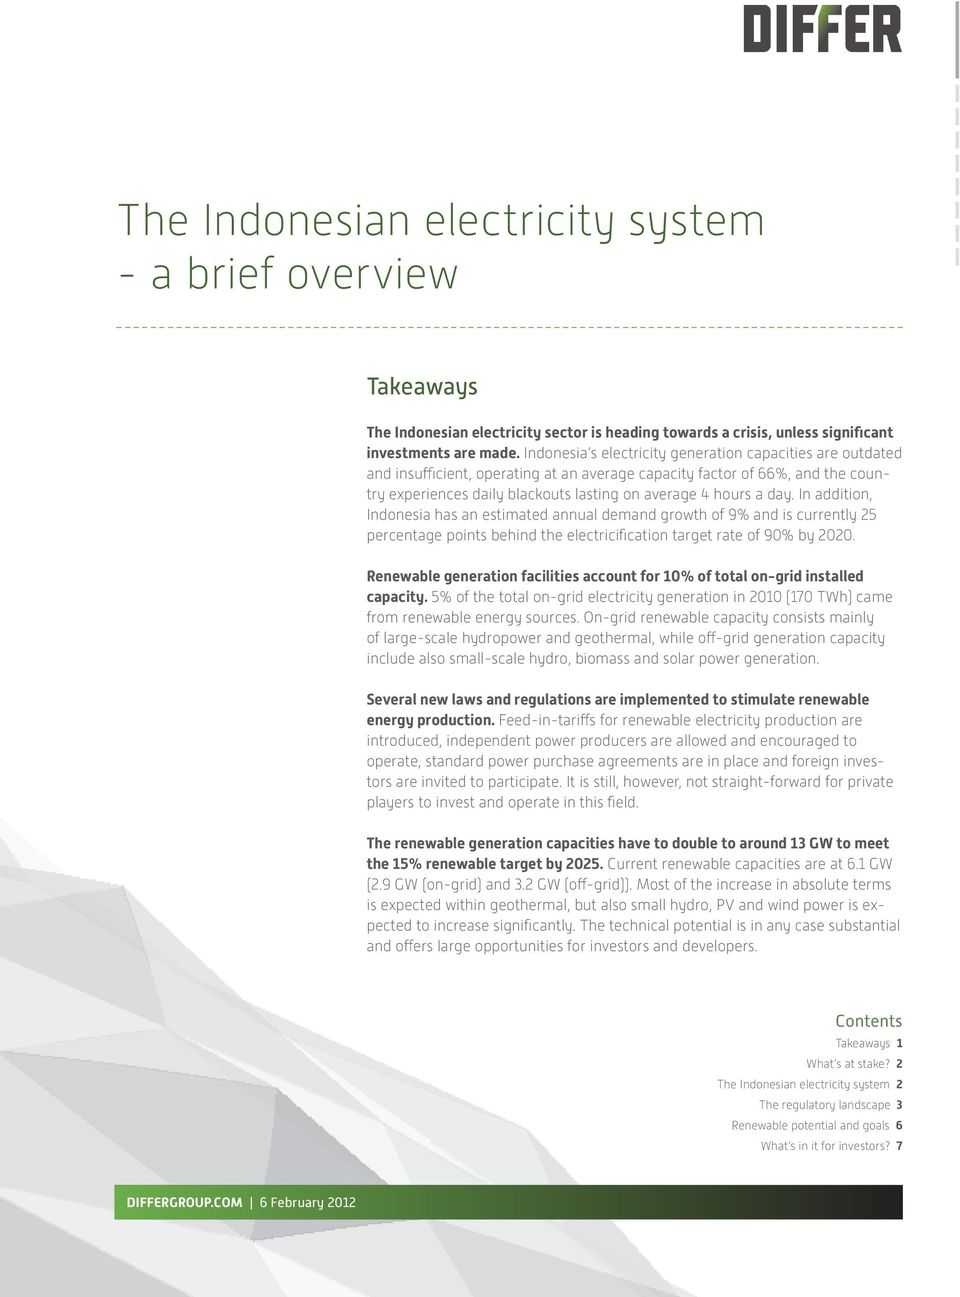 day. In addition, Indonesia has an estimated annual demand growth of 9% and is currently 25 percentage points behind the electricification target rate of 90% by 2020.